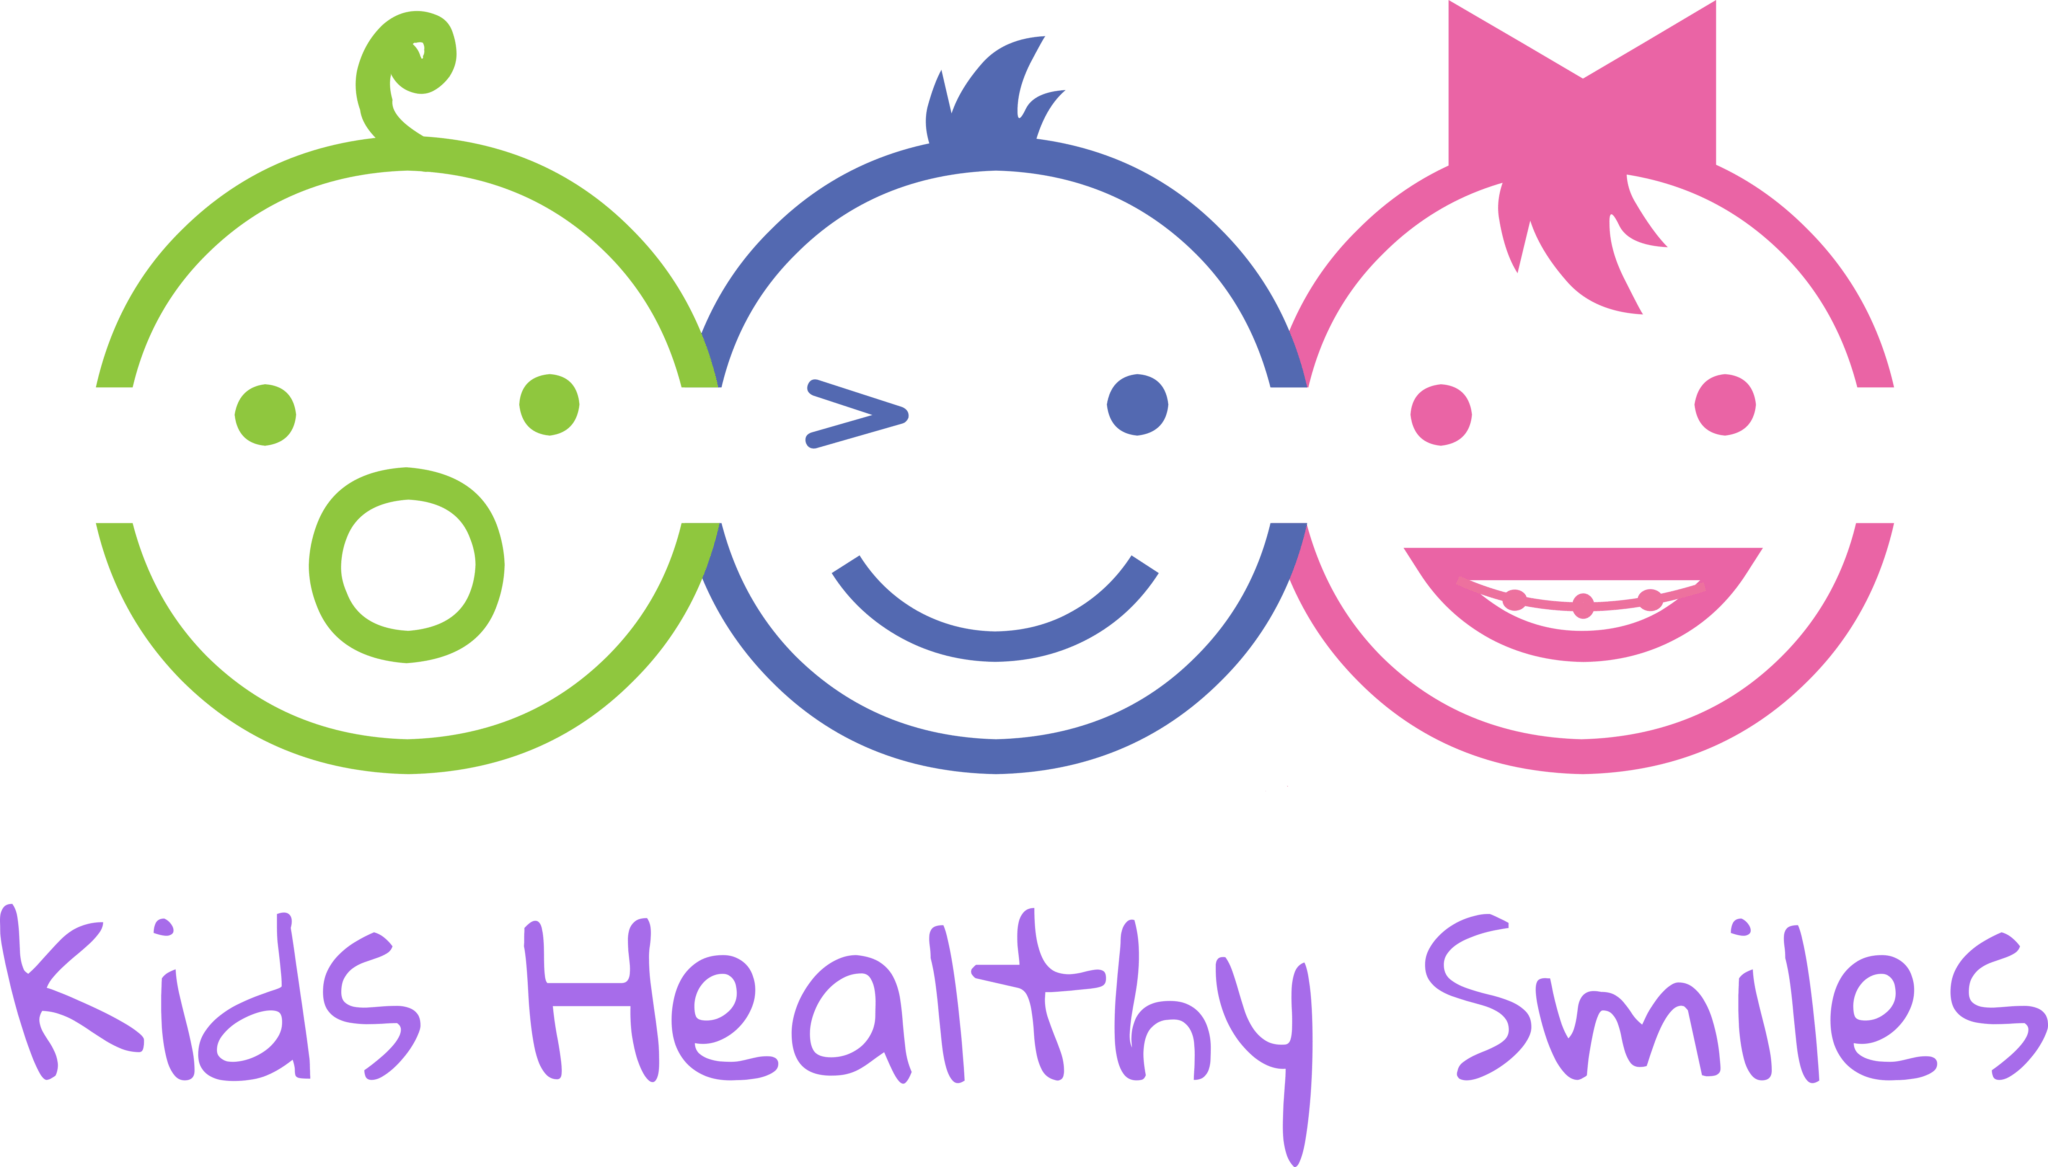 Kids Healthy Smiles